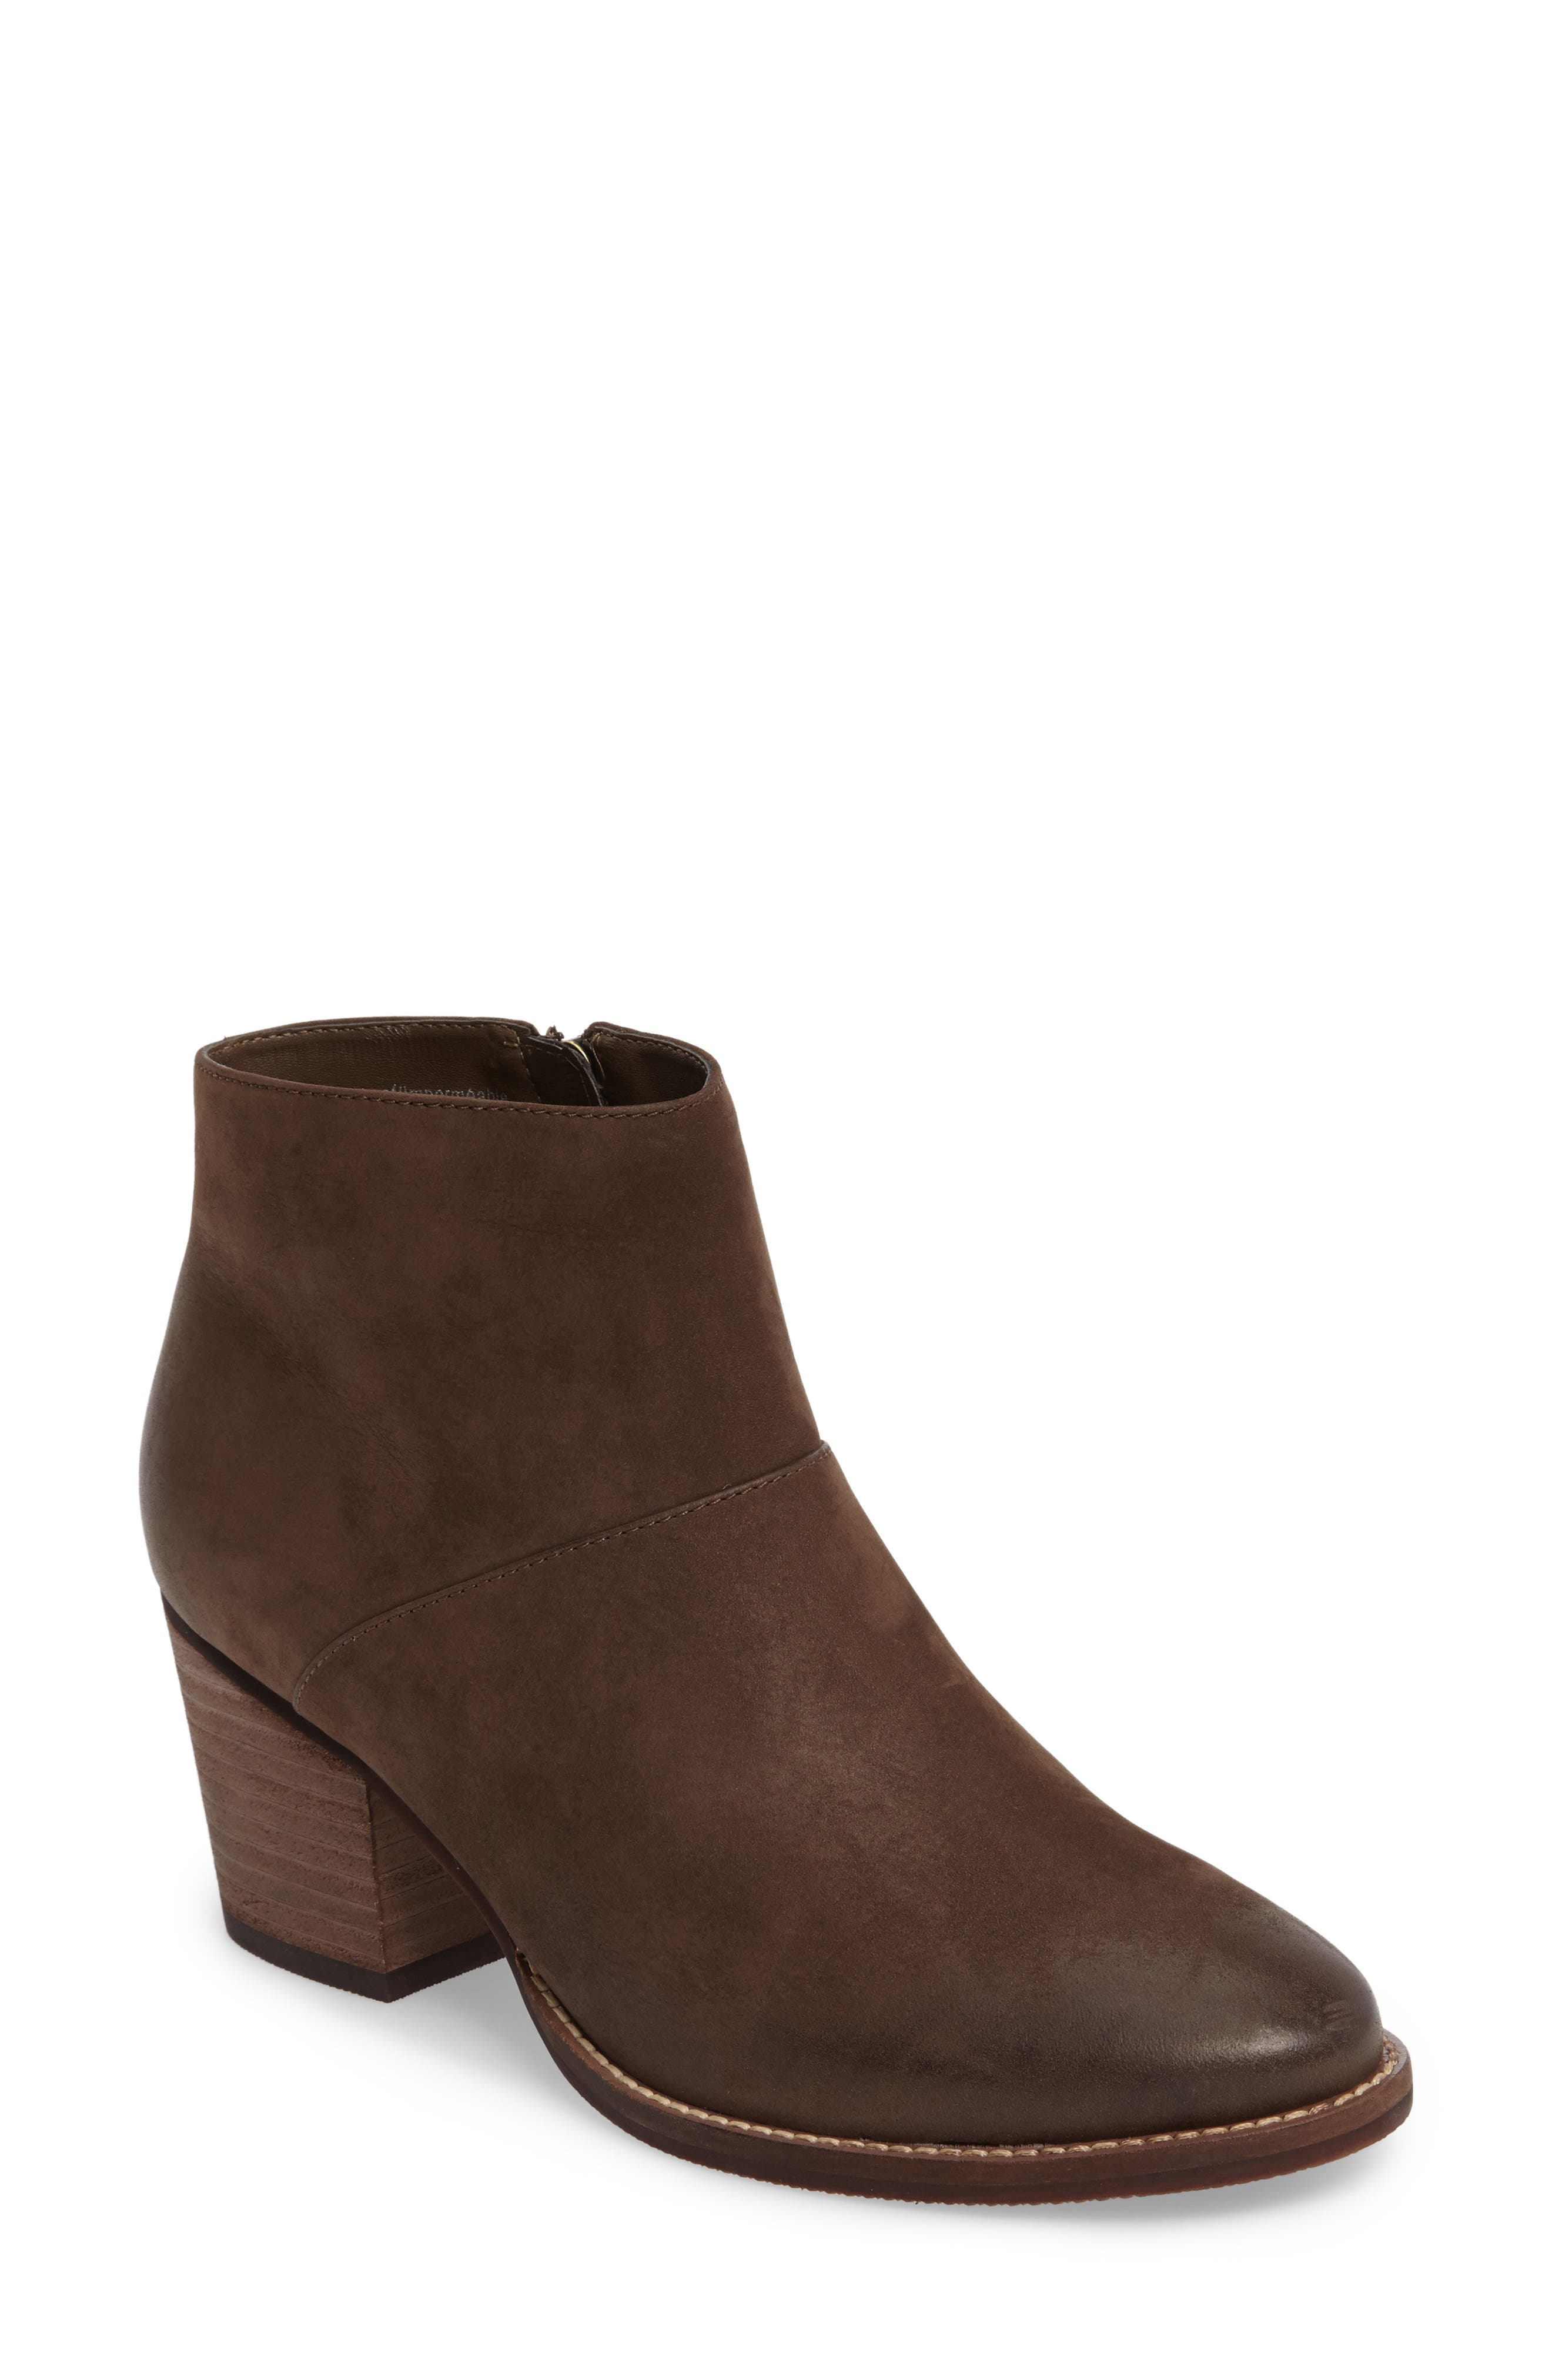 Nelli Waterproof Bootie,                         Main,                         color, Taupe Nubuck Leather